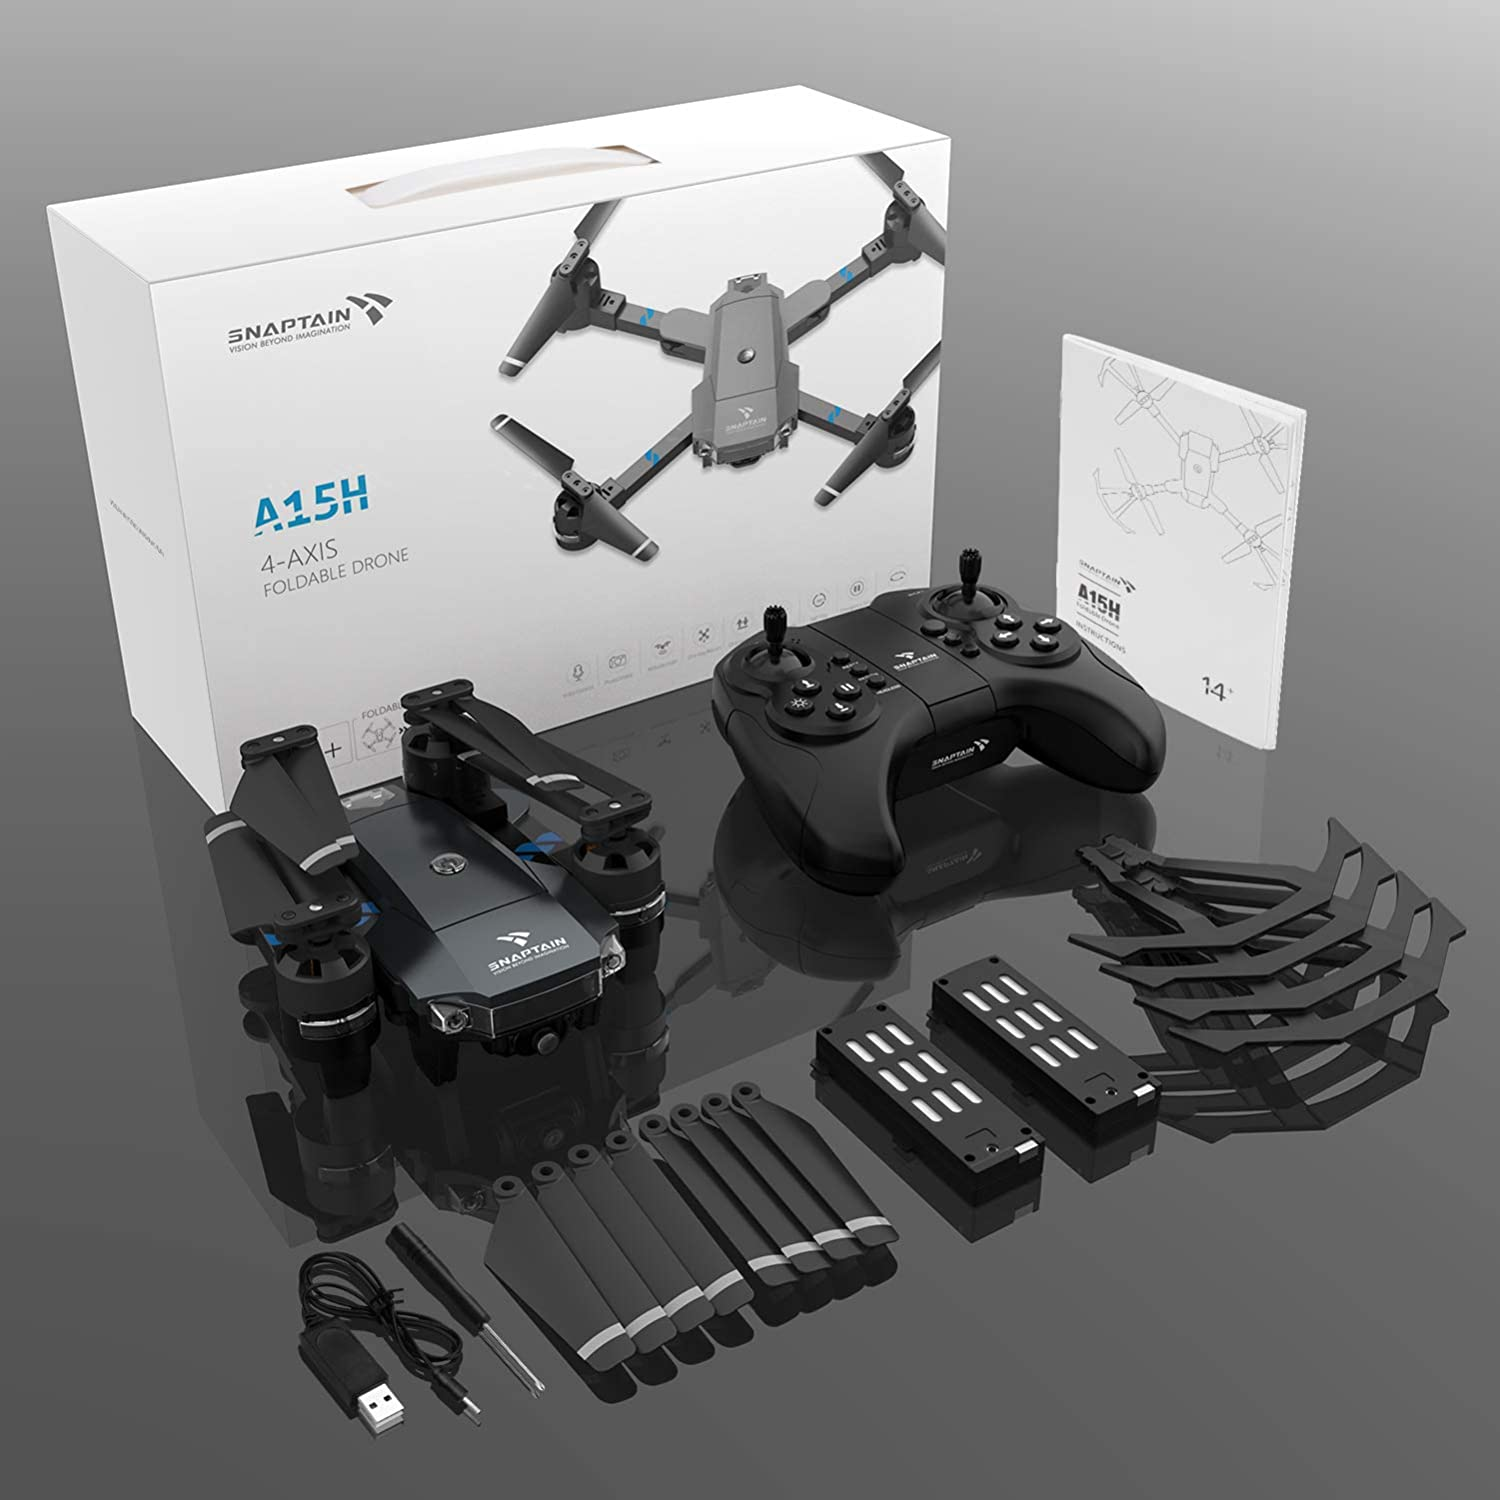 snaptain a15 foldable drone review and instruction to use